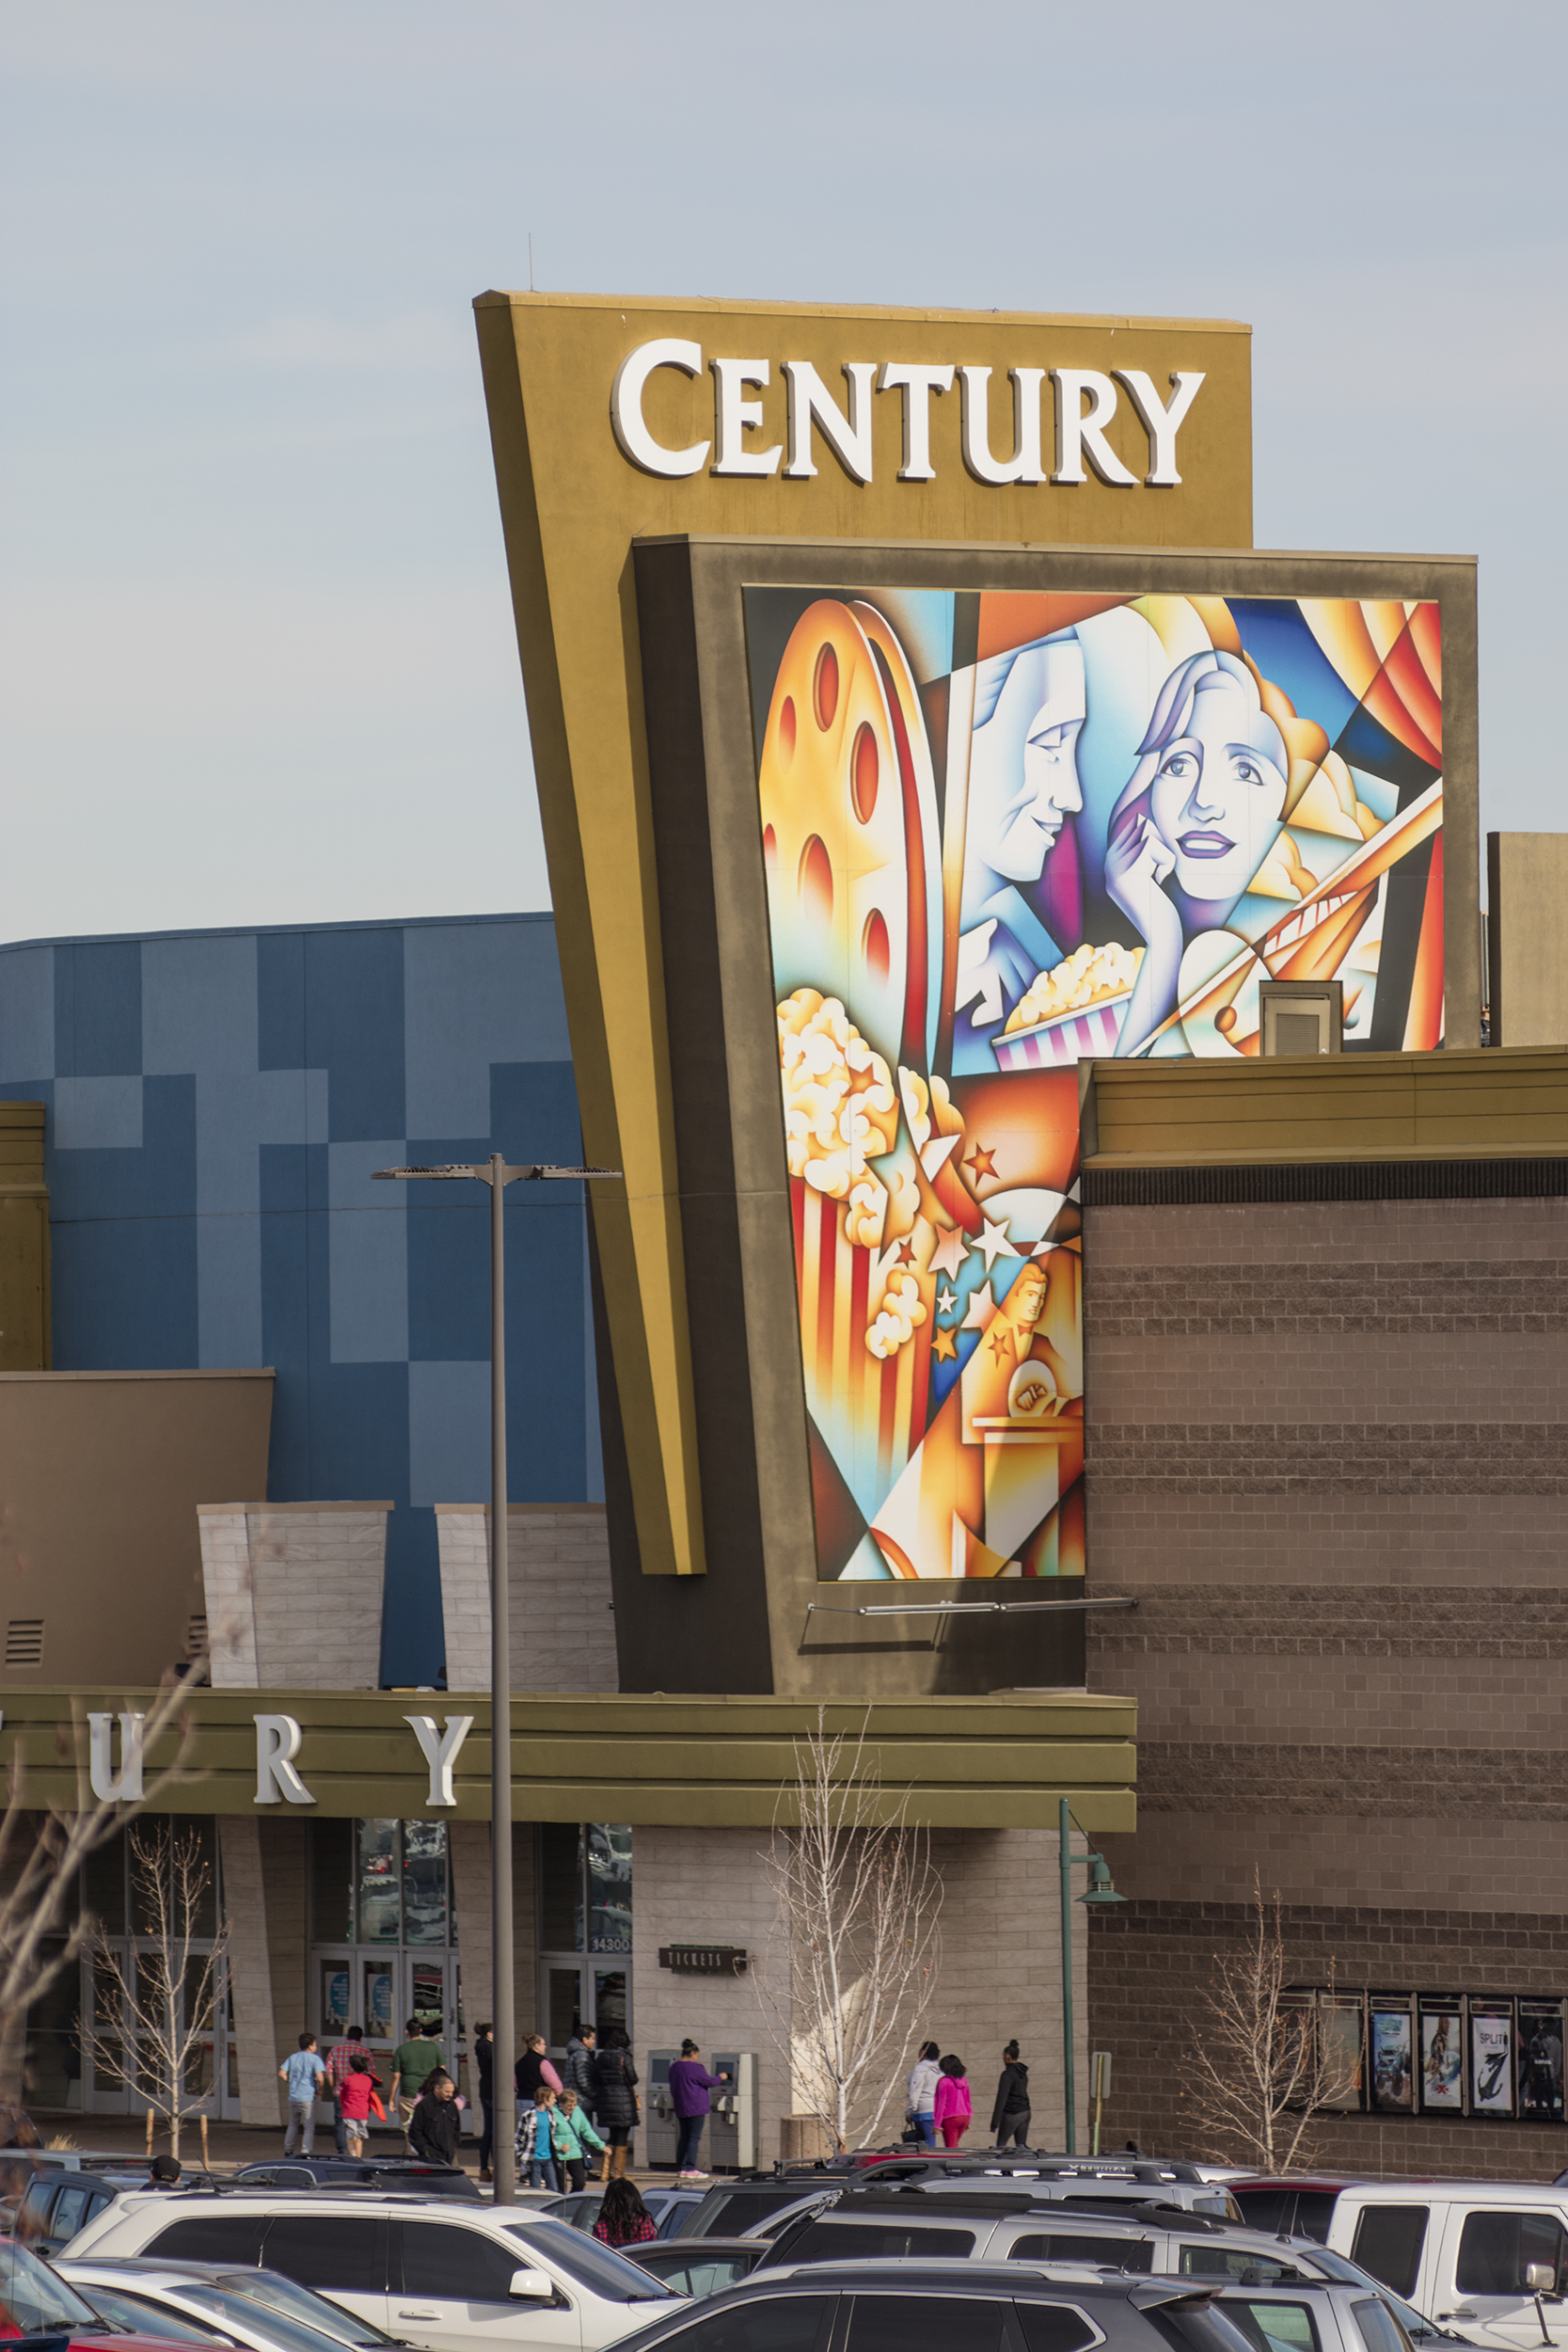 CENTURY 16 THEATER, AURORA COLORADO    SITE OF MASS SHOOTING, JULY 16, 2015    Fatalities:   (12 total)   Jonathan T. Blunk, 26   Alexander J. Boik, 18   Air Force Staff Sgt Jesse E. Childress, 29   Gordon W. Cowden, 51   Jessica Ghawi, 24   Petty Officer 3rd Class John Thomas Larimer, 27   Matthew R. McQuinn, 27   Micayla C. Medek, 23   Veronica Moser-Sullivan, 6   Alex M. Sullivan, 27   Alexander C. Teves, 24   Rebecca Ann Wingo, 32